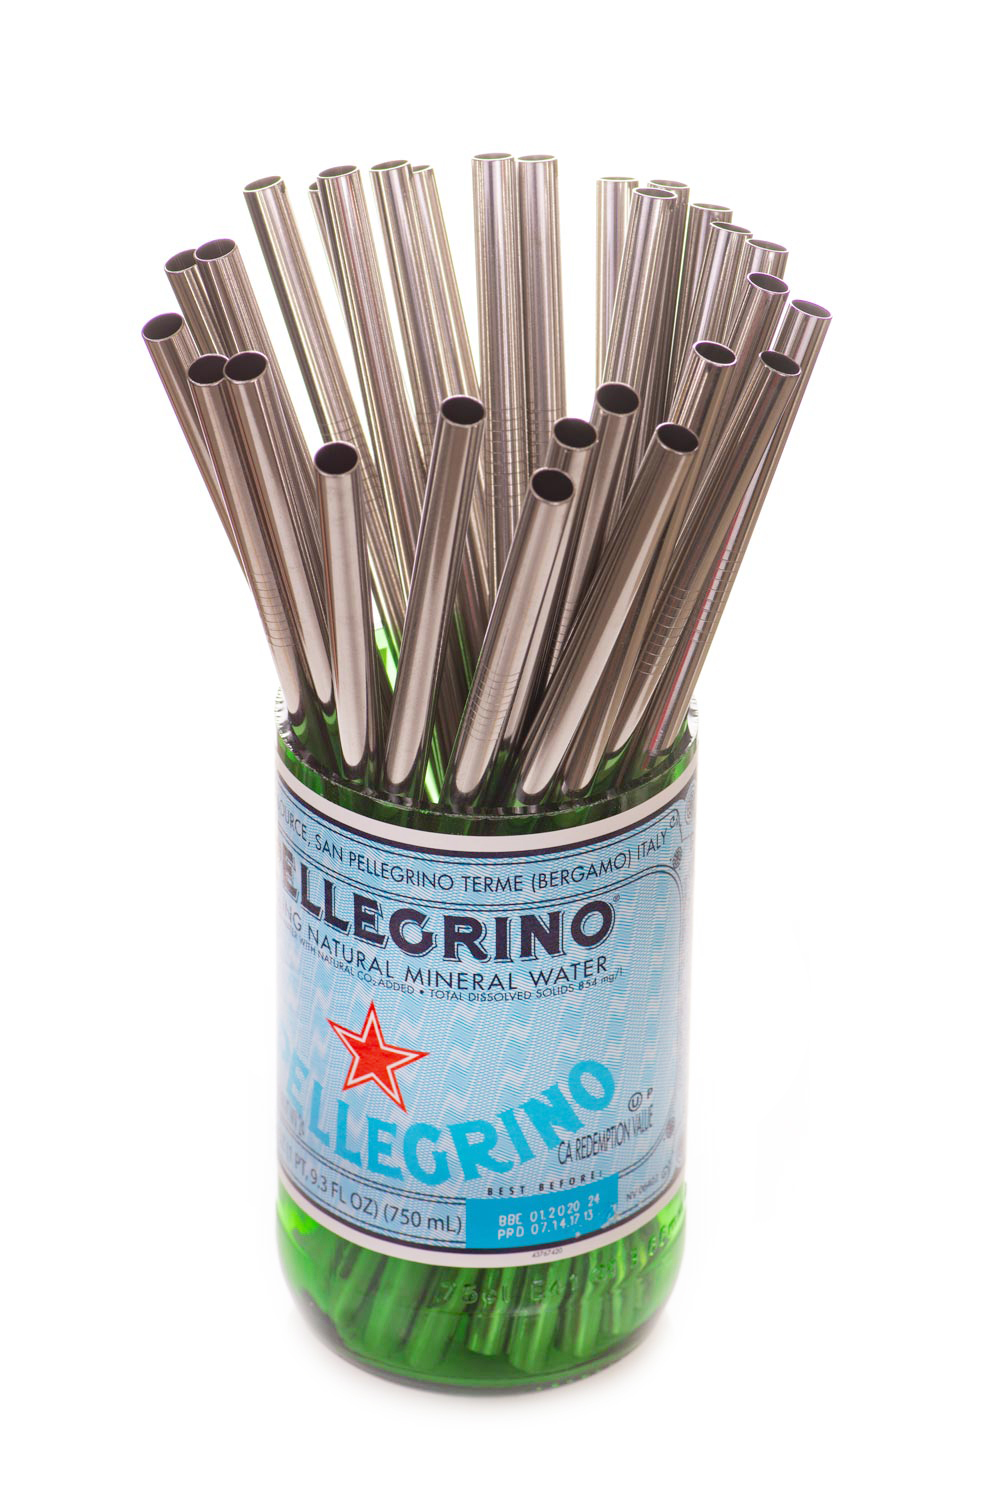 Bulk Stainless Steel Straws in Glass Jar